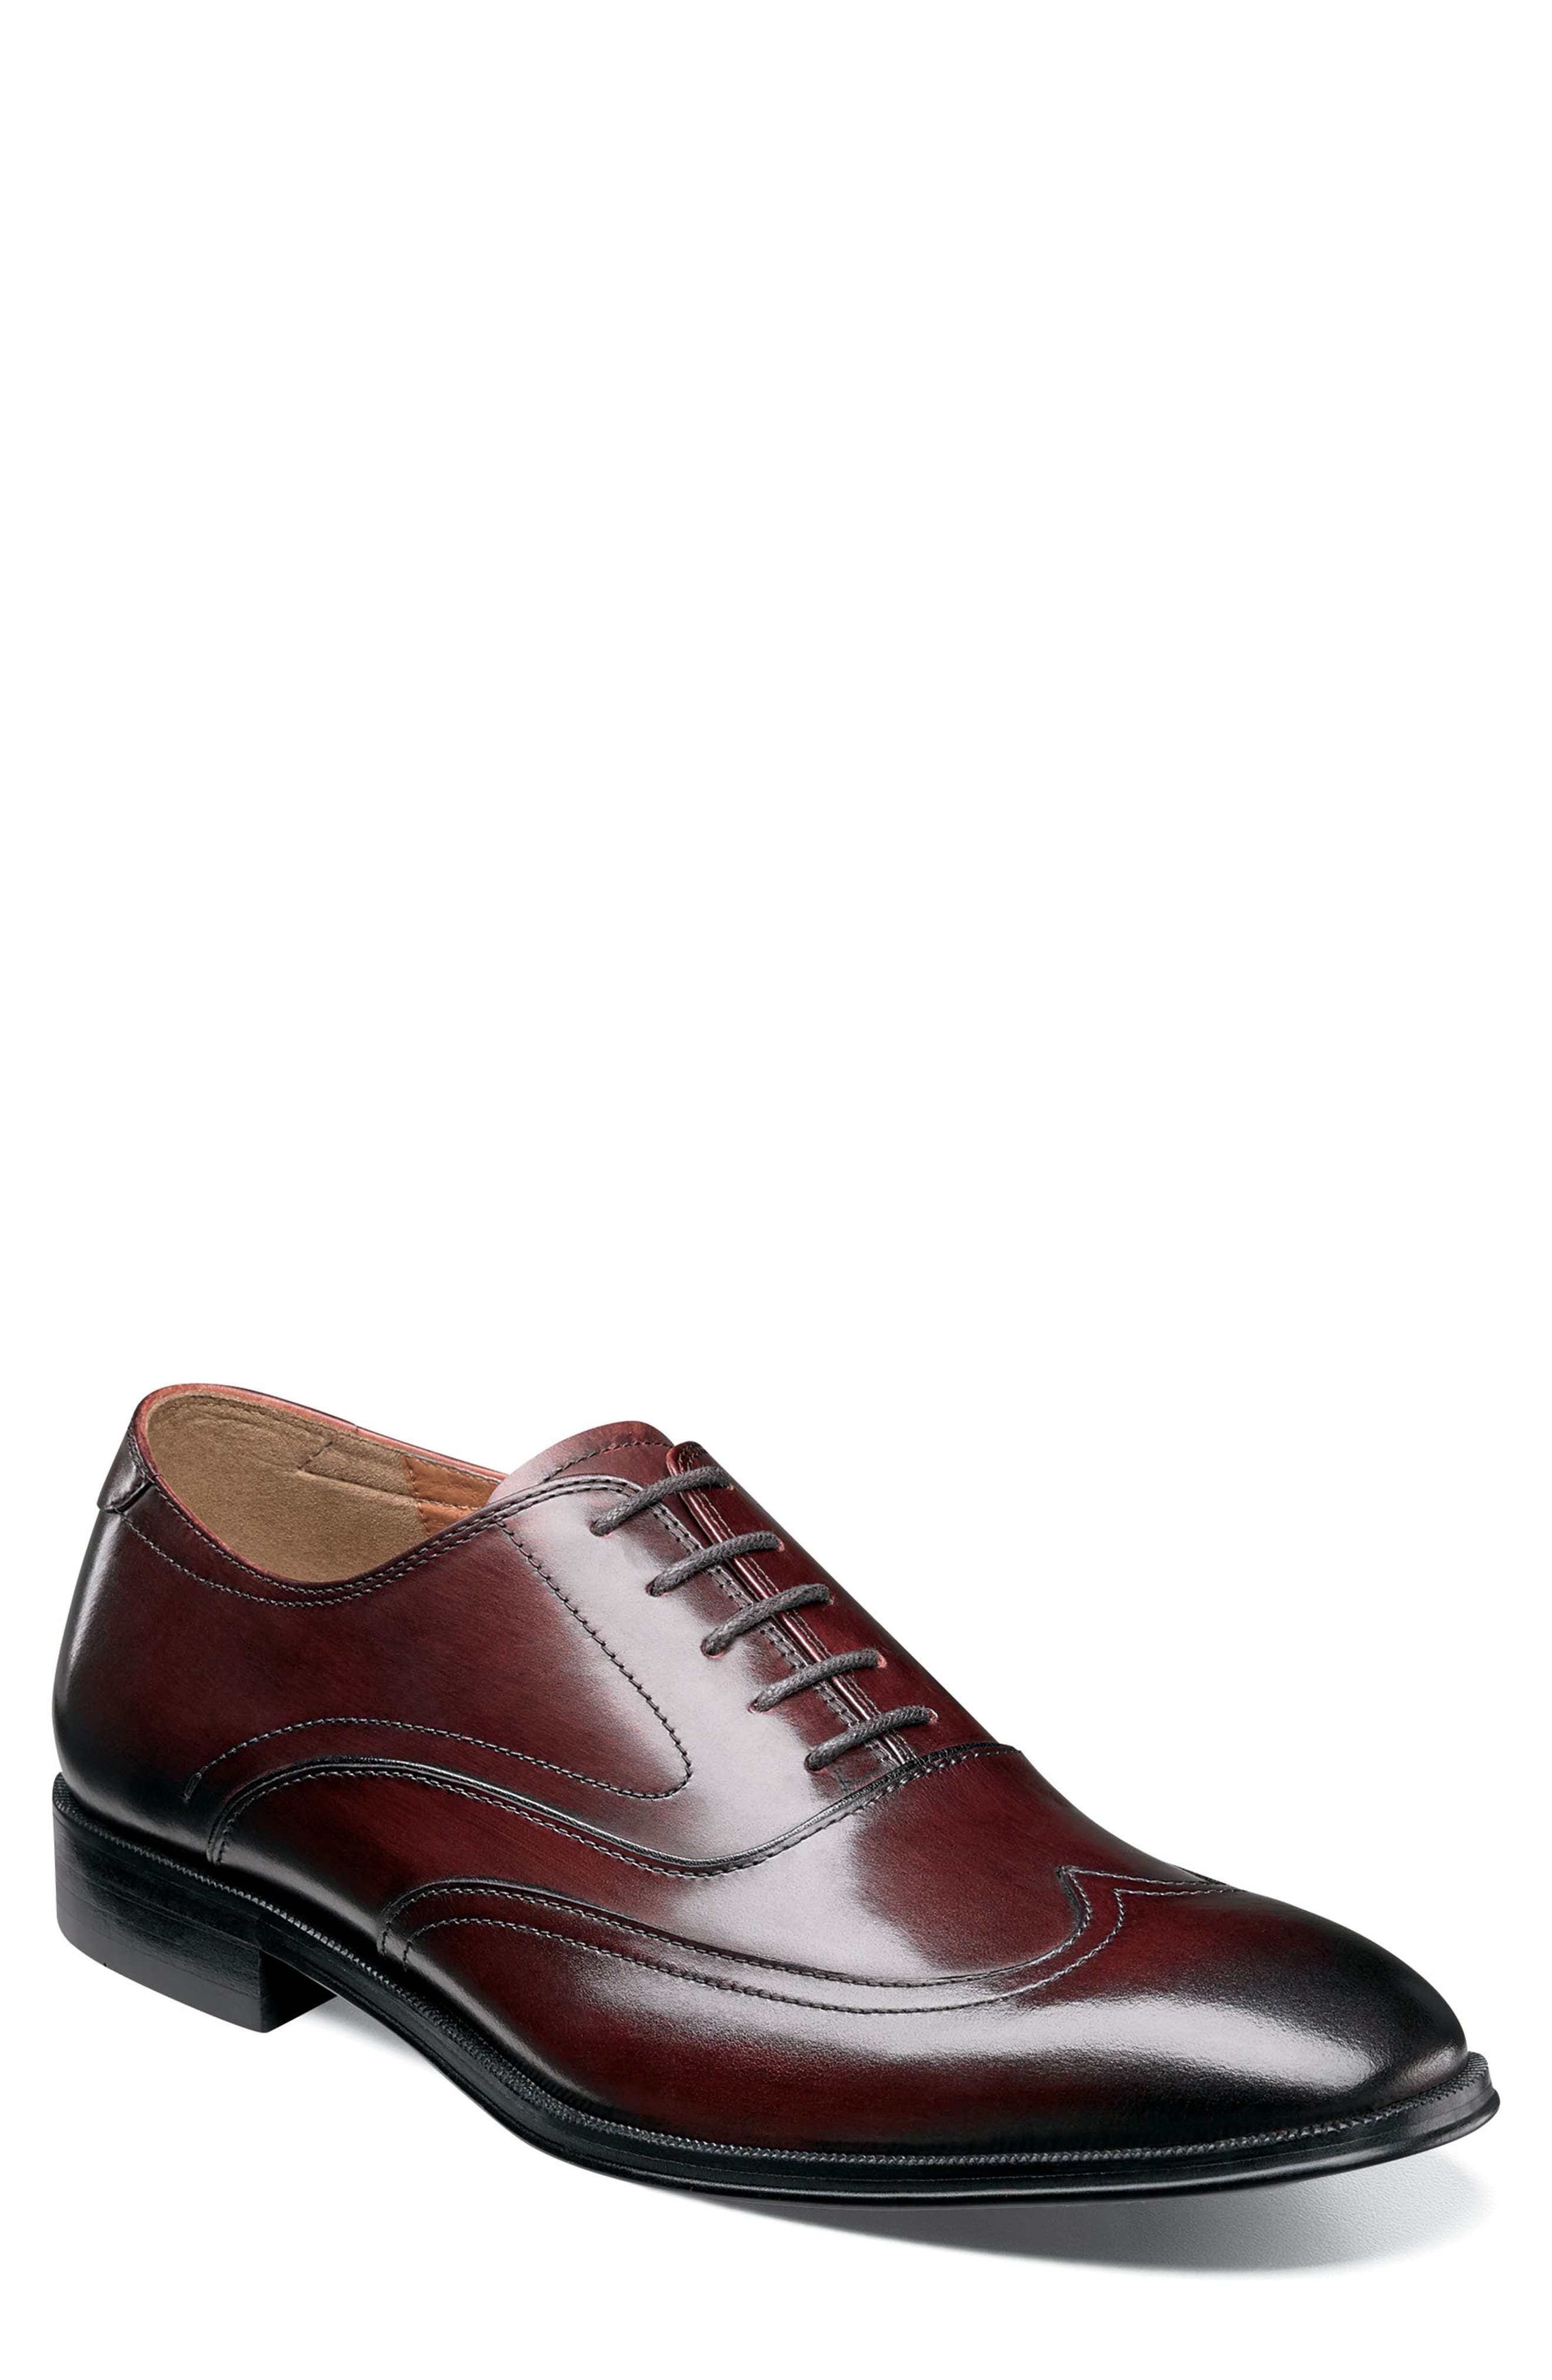 Belfast Wingtip,                         Main,                         color, BURGUNDY LEATHER